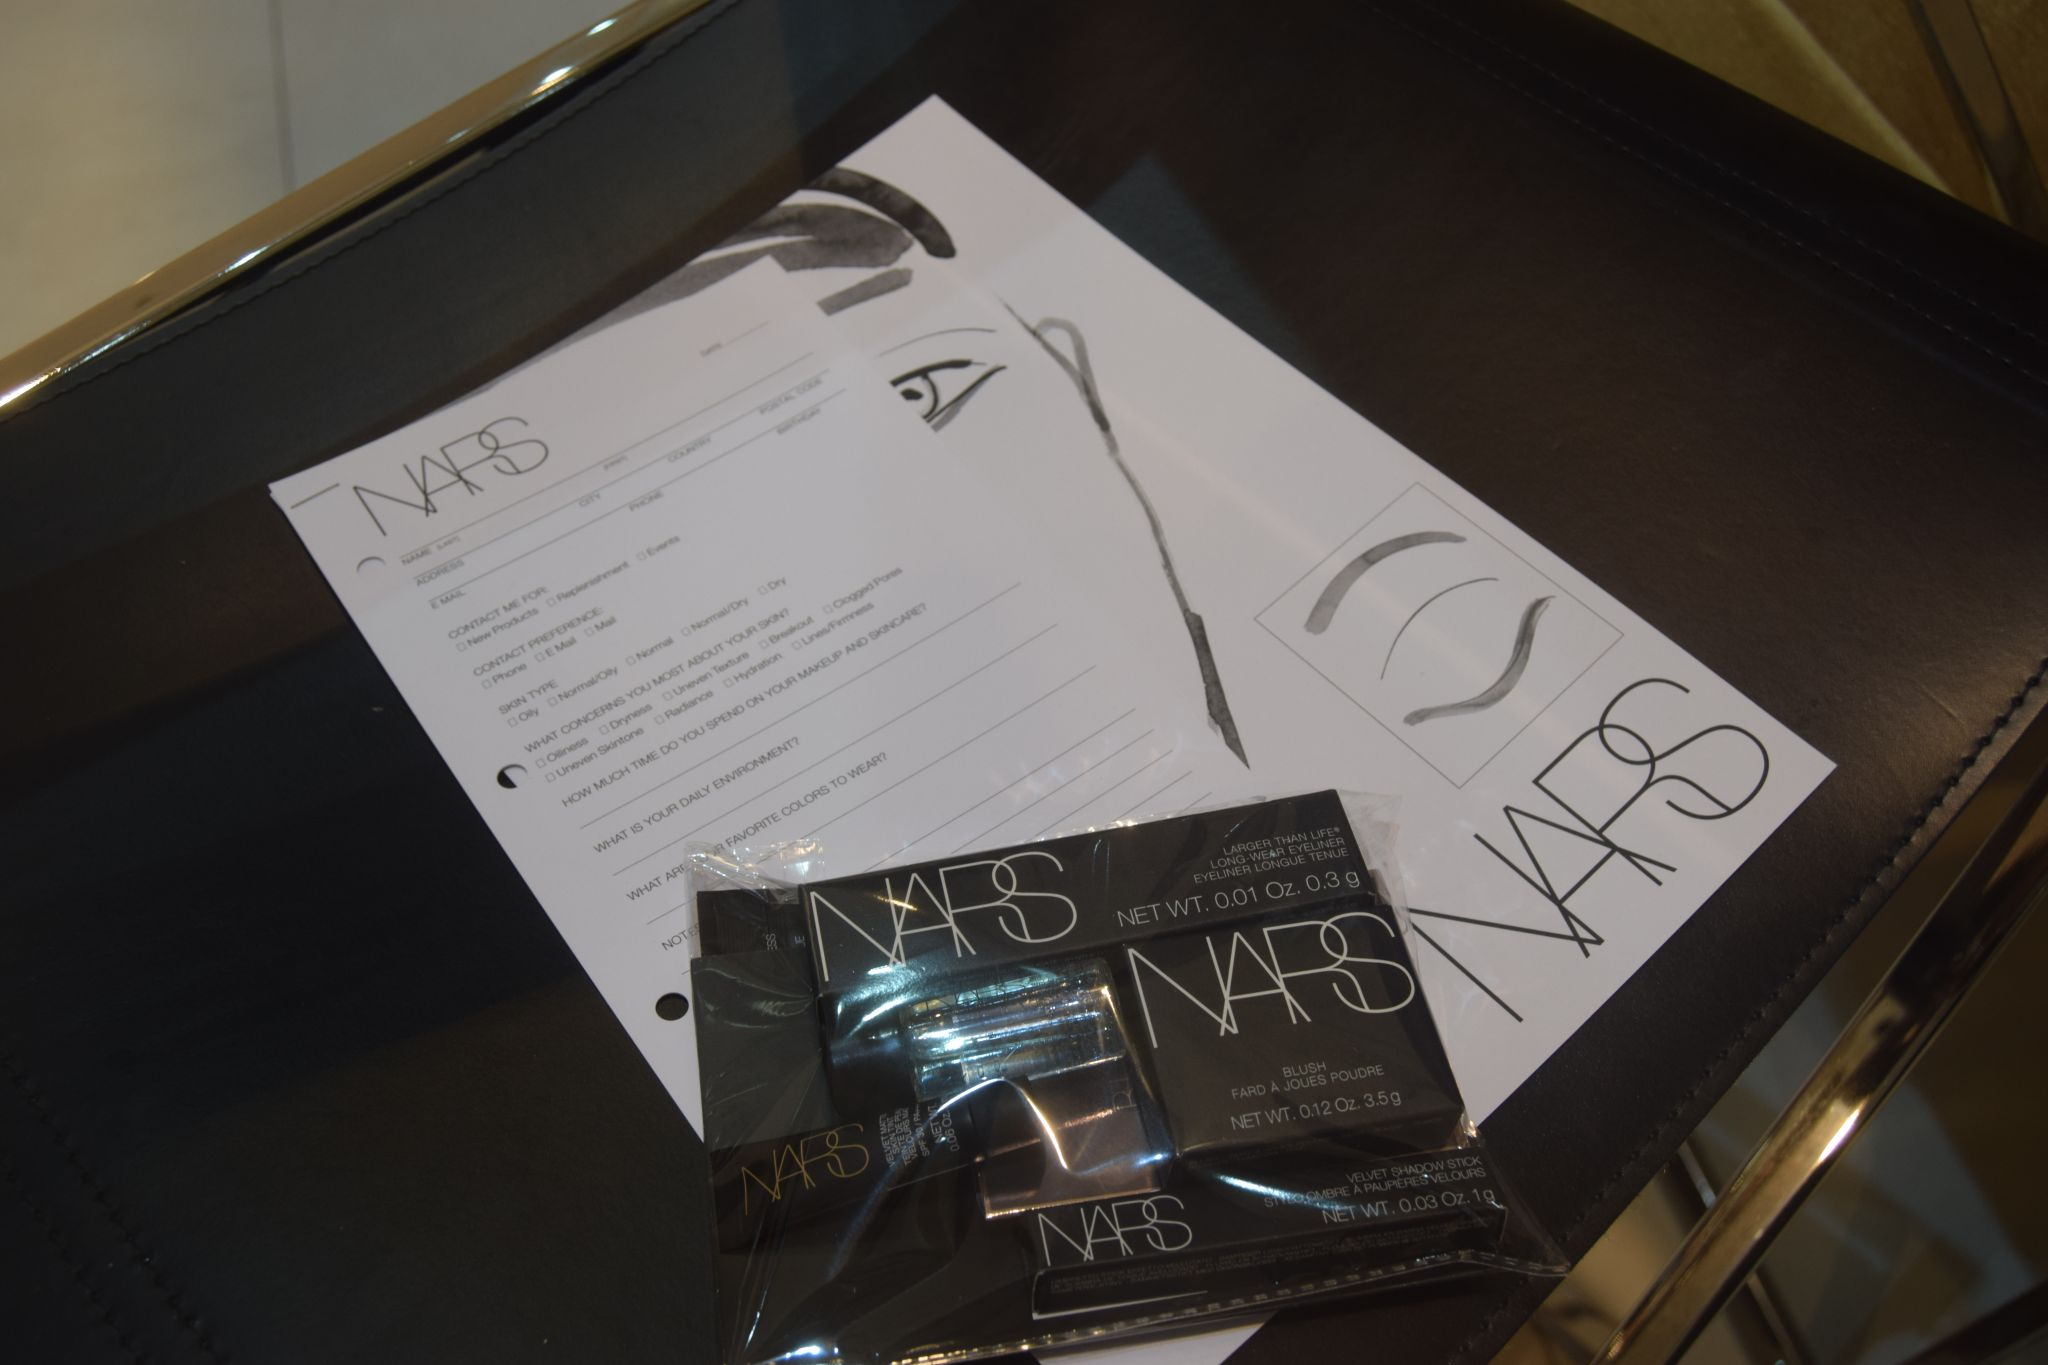 DSC 2429 1440x960 - Nars Exclusive Workshops: Sun Wash Diffusing Bronzer Collection